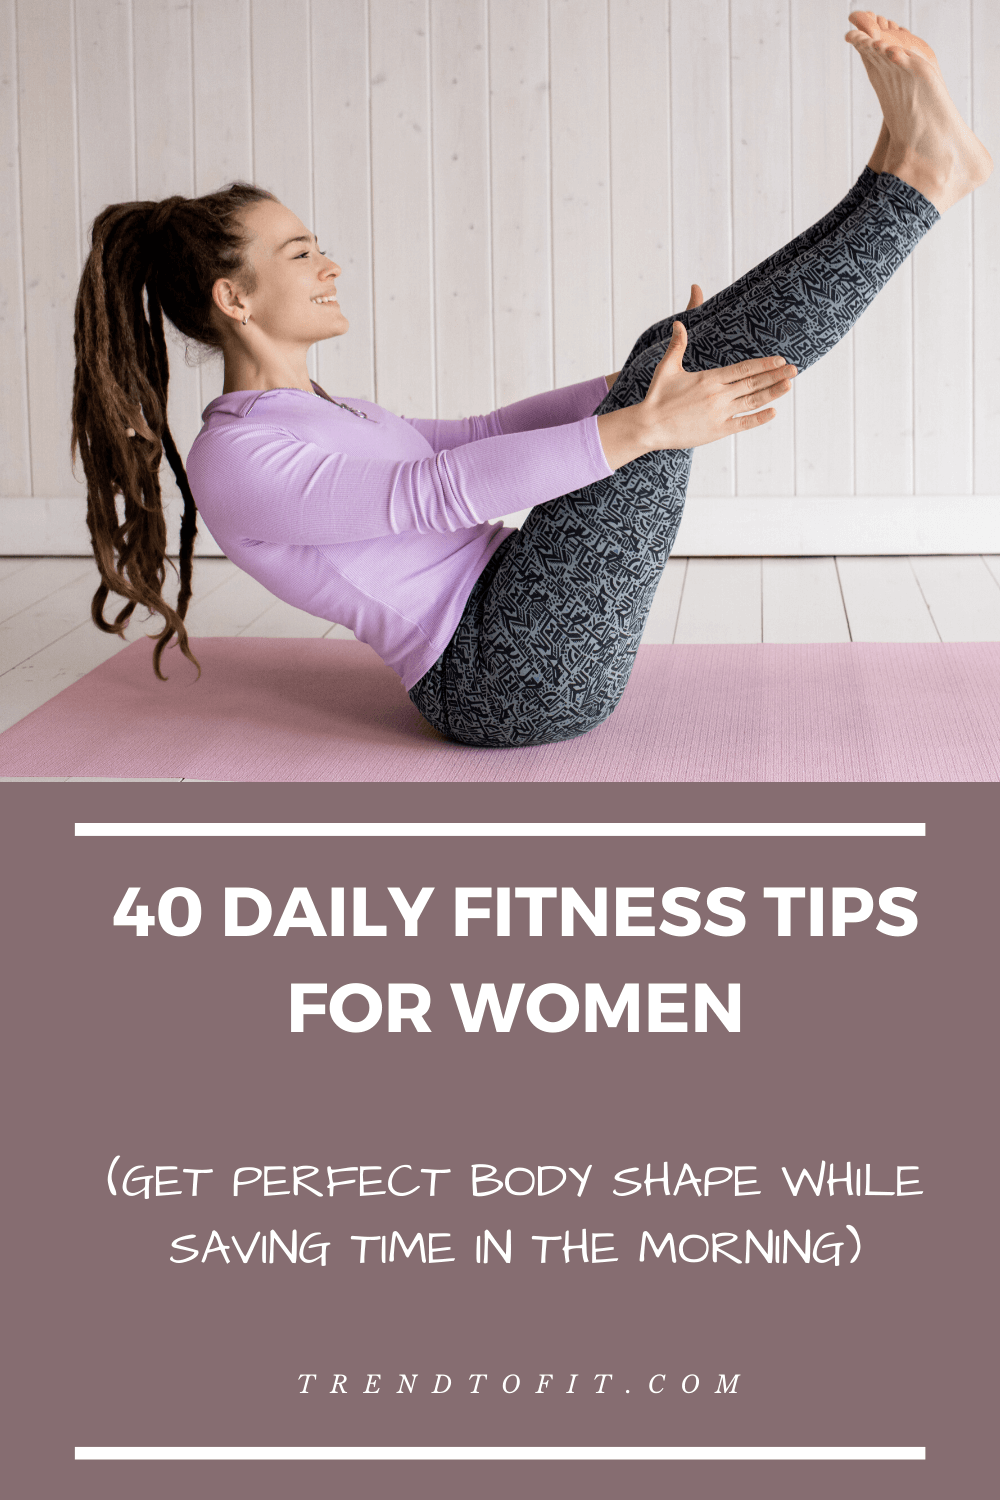 40 Fitness Tips For Women To Get Perfect Body Shape Women S Fitness A person with this body shape has difficulty some women will not fit into any of these categories but the basic principles still apply. women to get perfect body shape